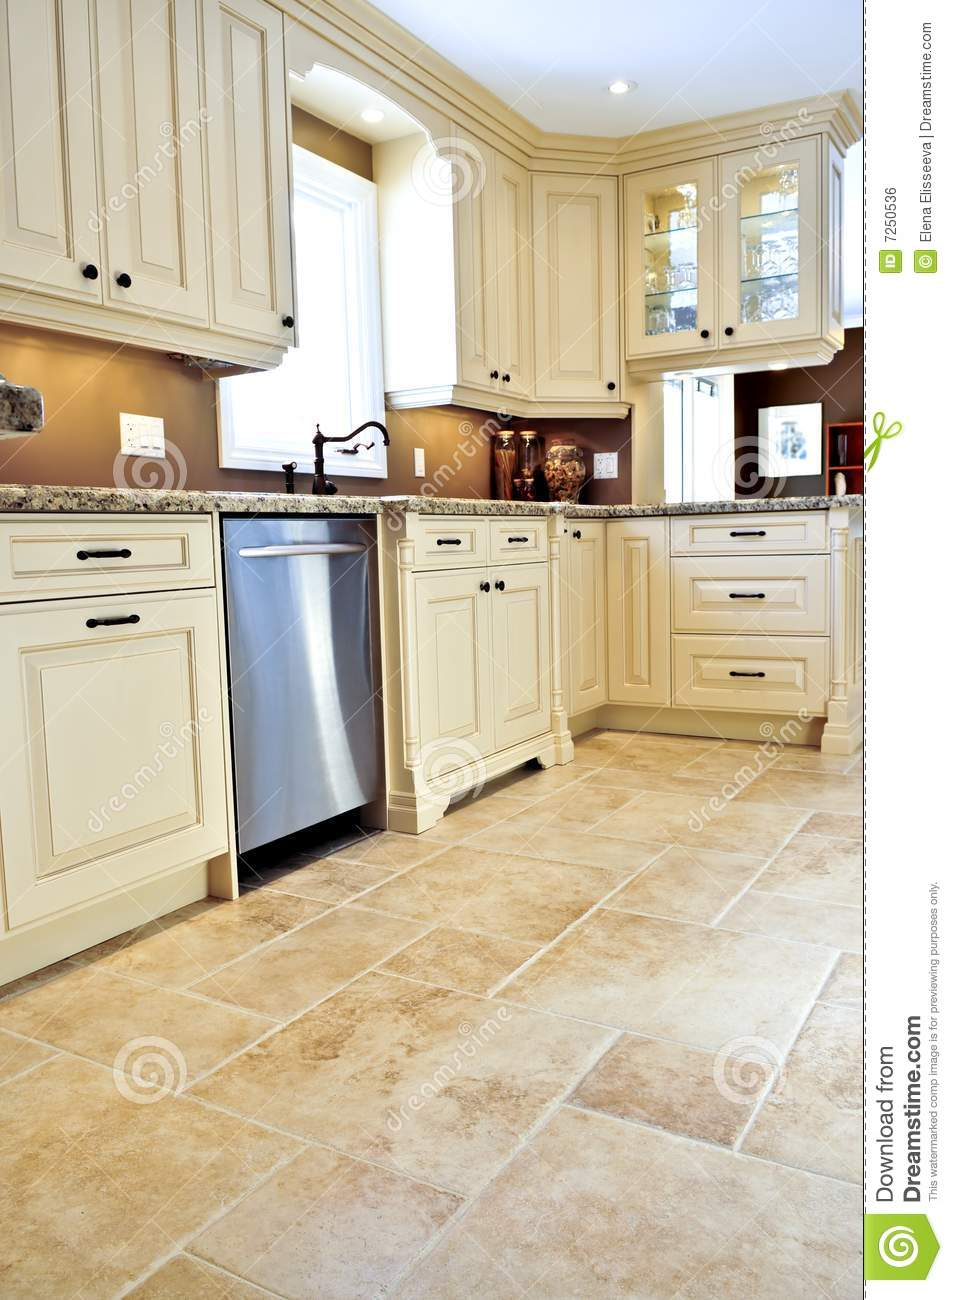 Tile Floor In Modern Kitchen Royalty Free Stock Image